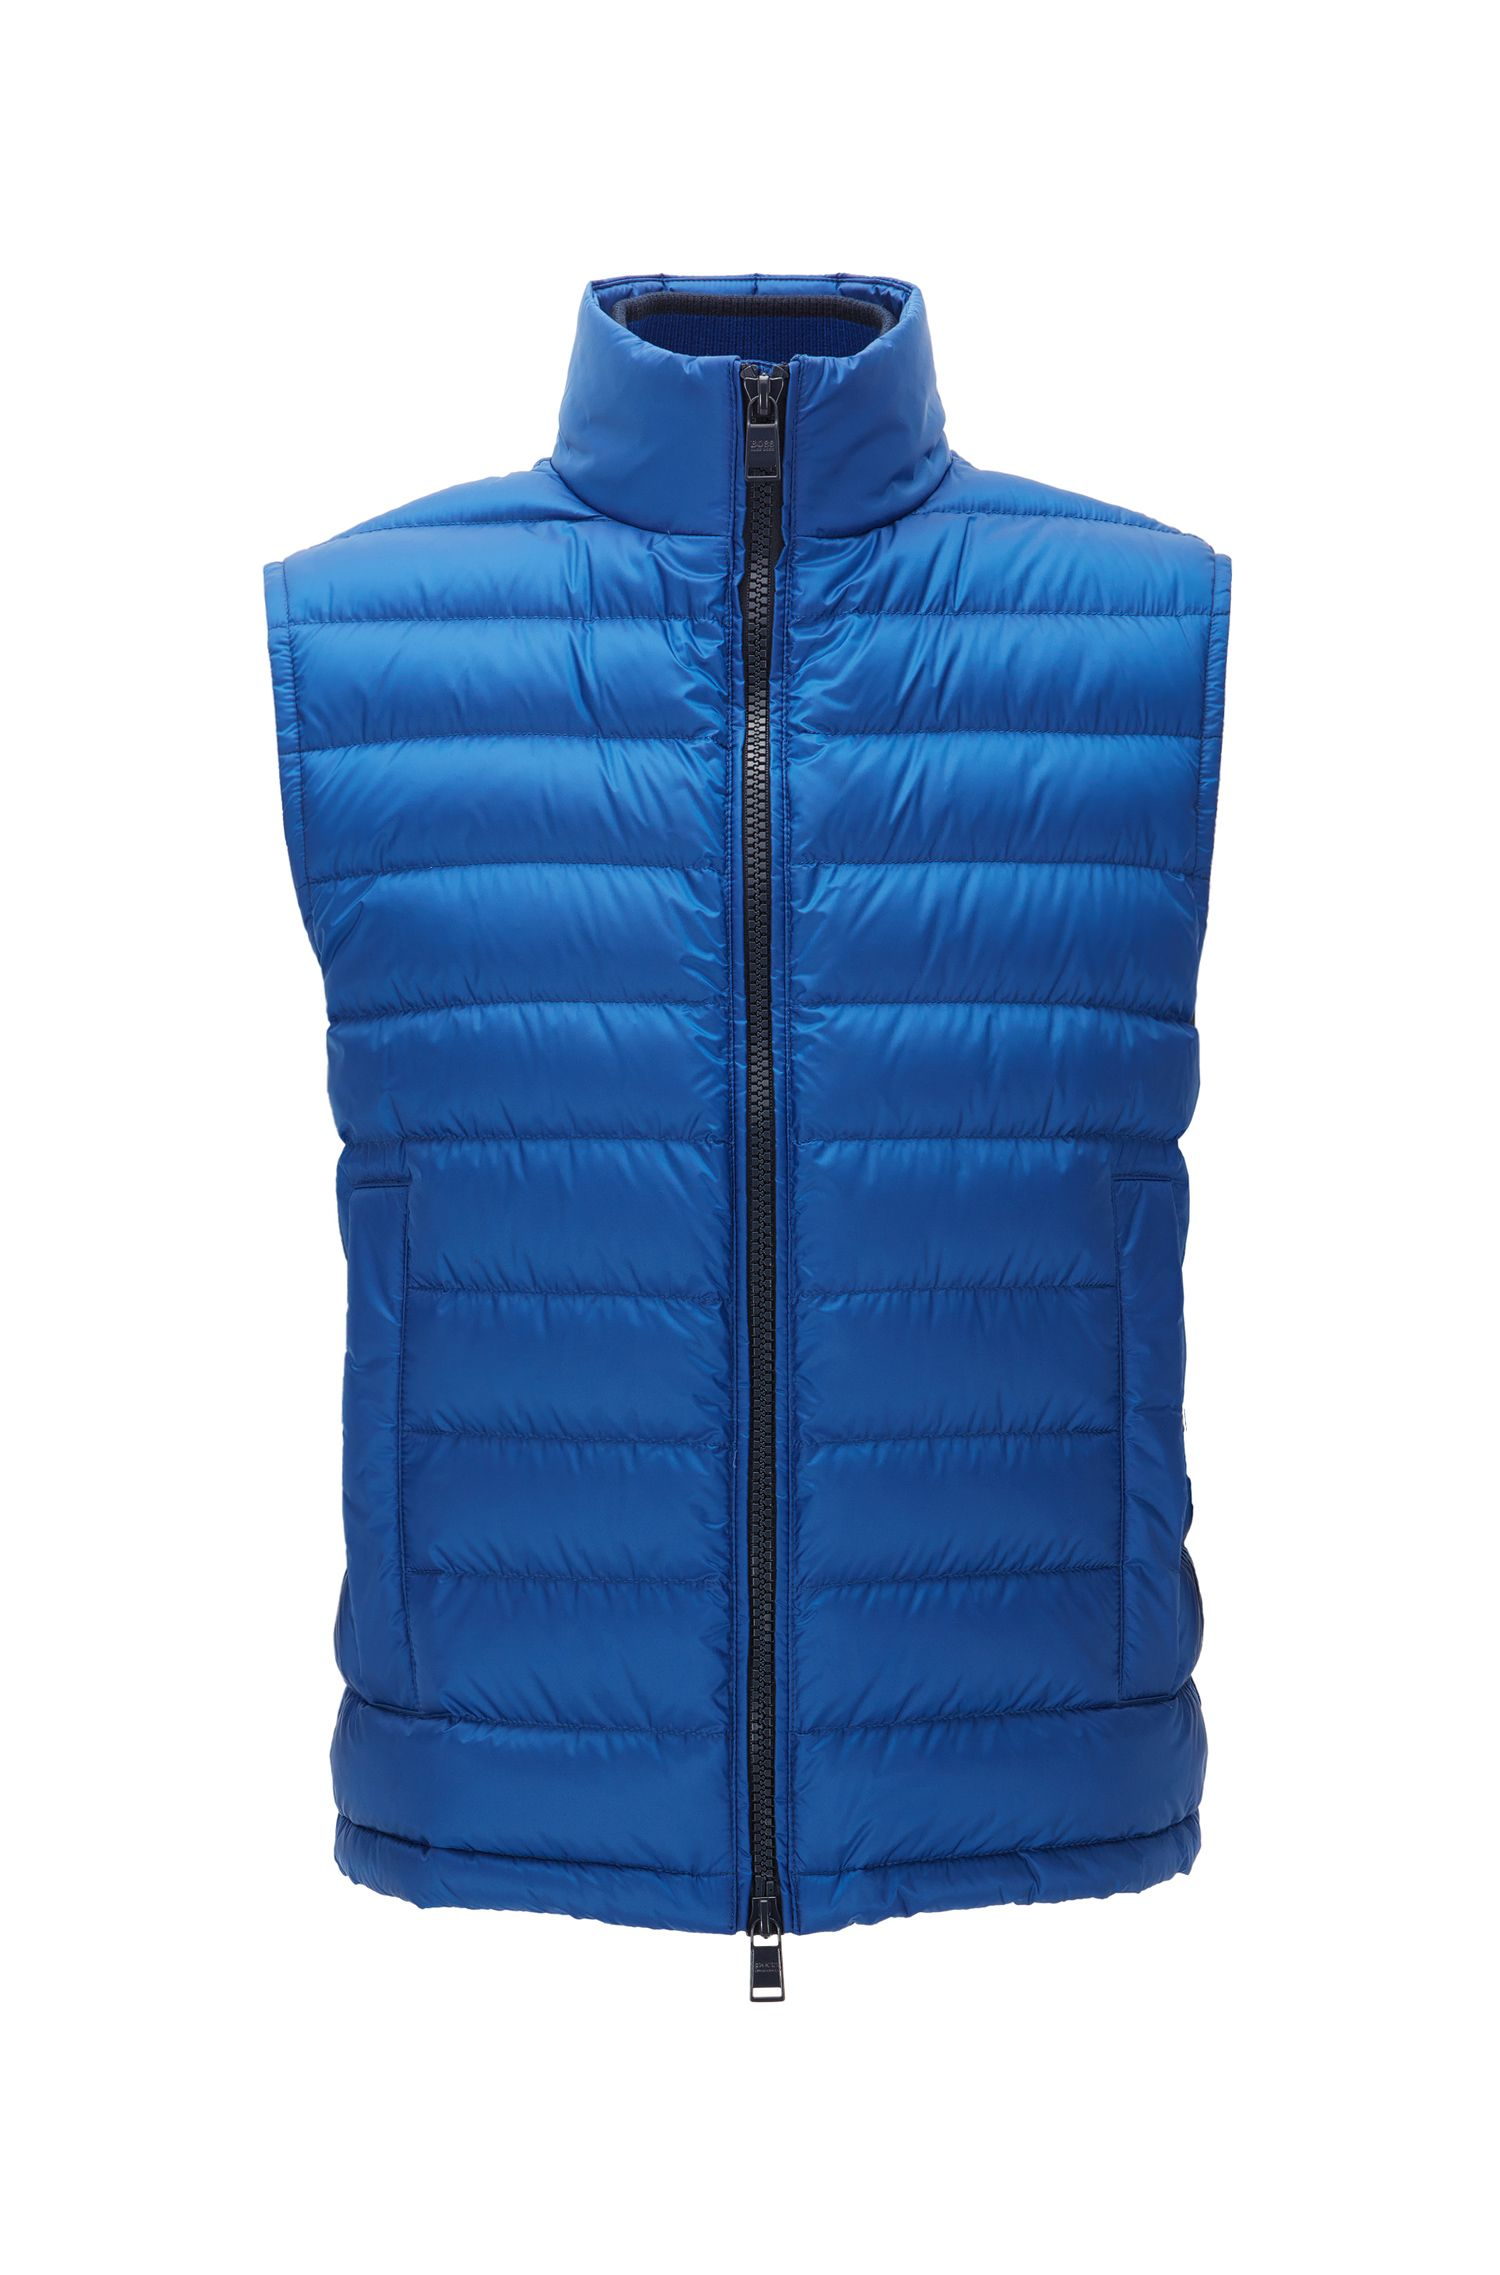 Gilet relaxed fit in tessuto tecnico idrorepellente